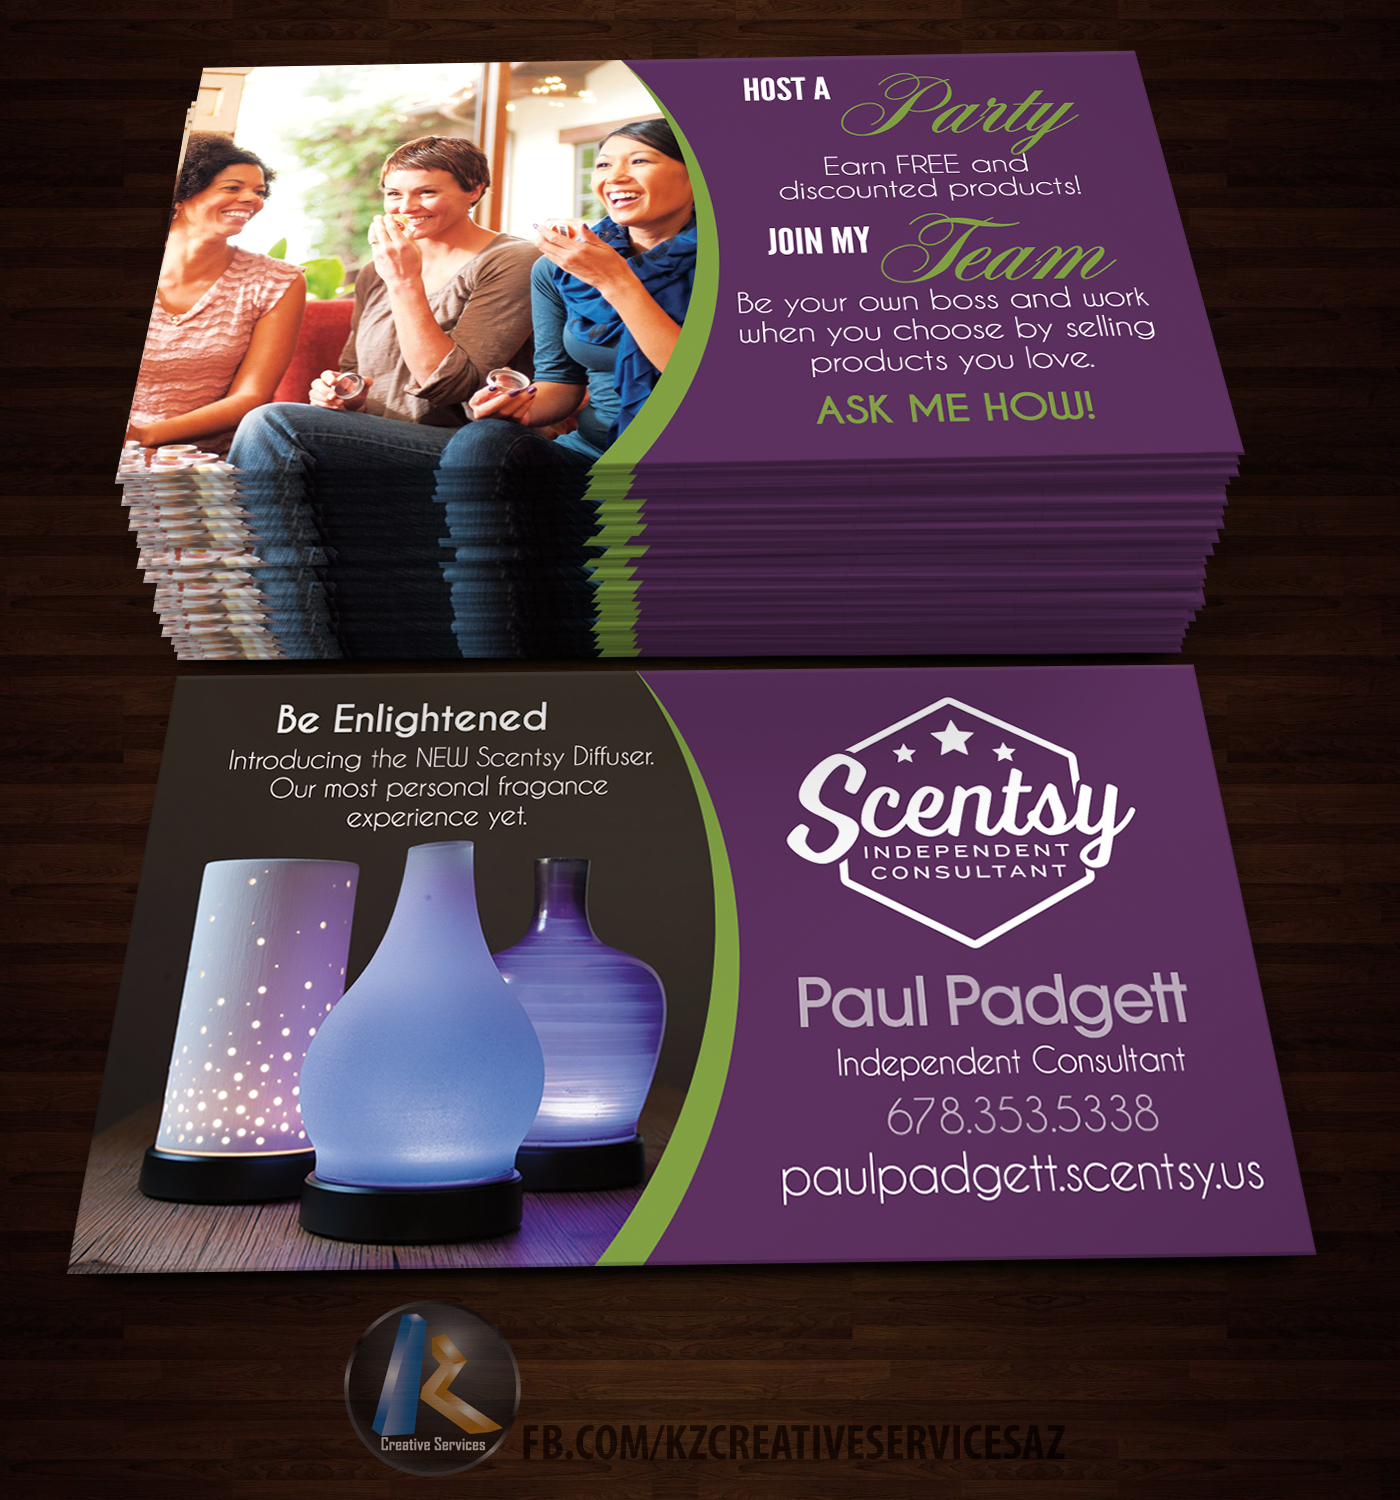 Scentsy Business Cards style 4 · KZ Creative Services · Online ...